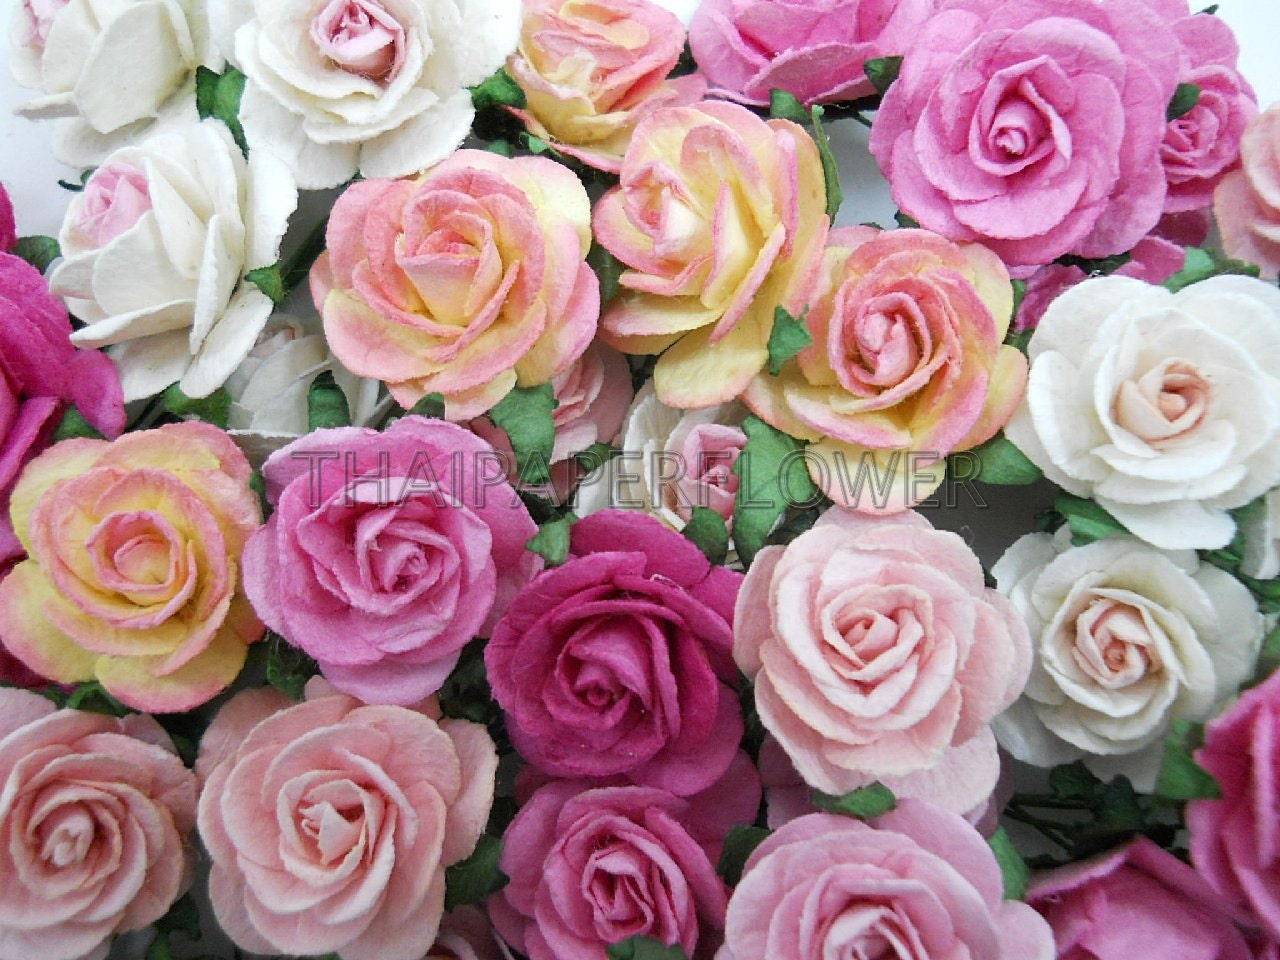 100 mixed pink paper flower scrapbook card making home decor craft 100 mixed pink paper flower scrapbook card making home decor craft supply rose 6 00 mightylinksfo